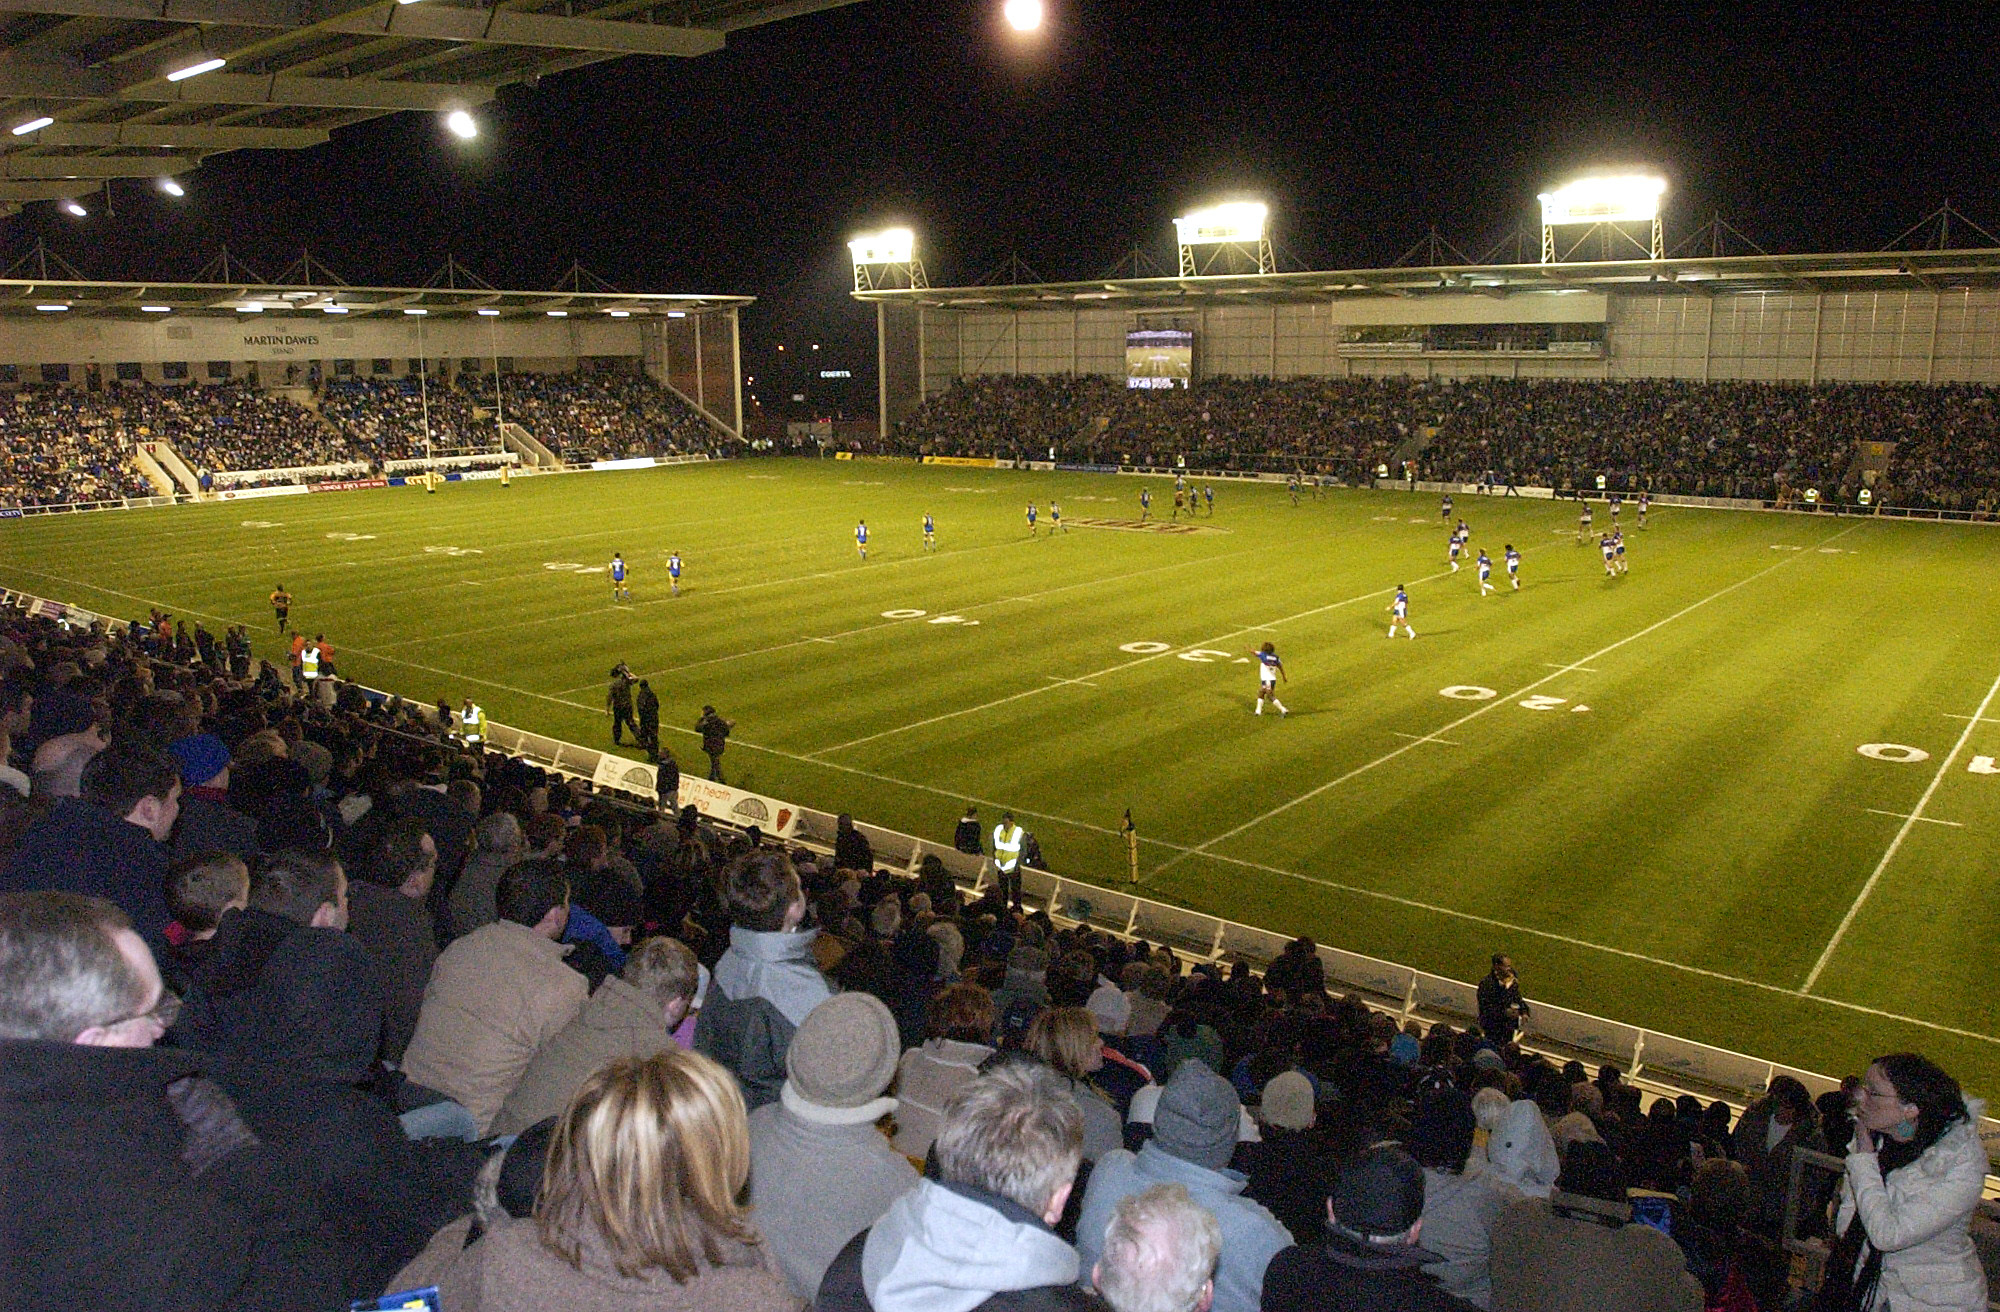 Wolves' first match in the new den on February 21, 2004. The view from the North Stand